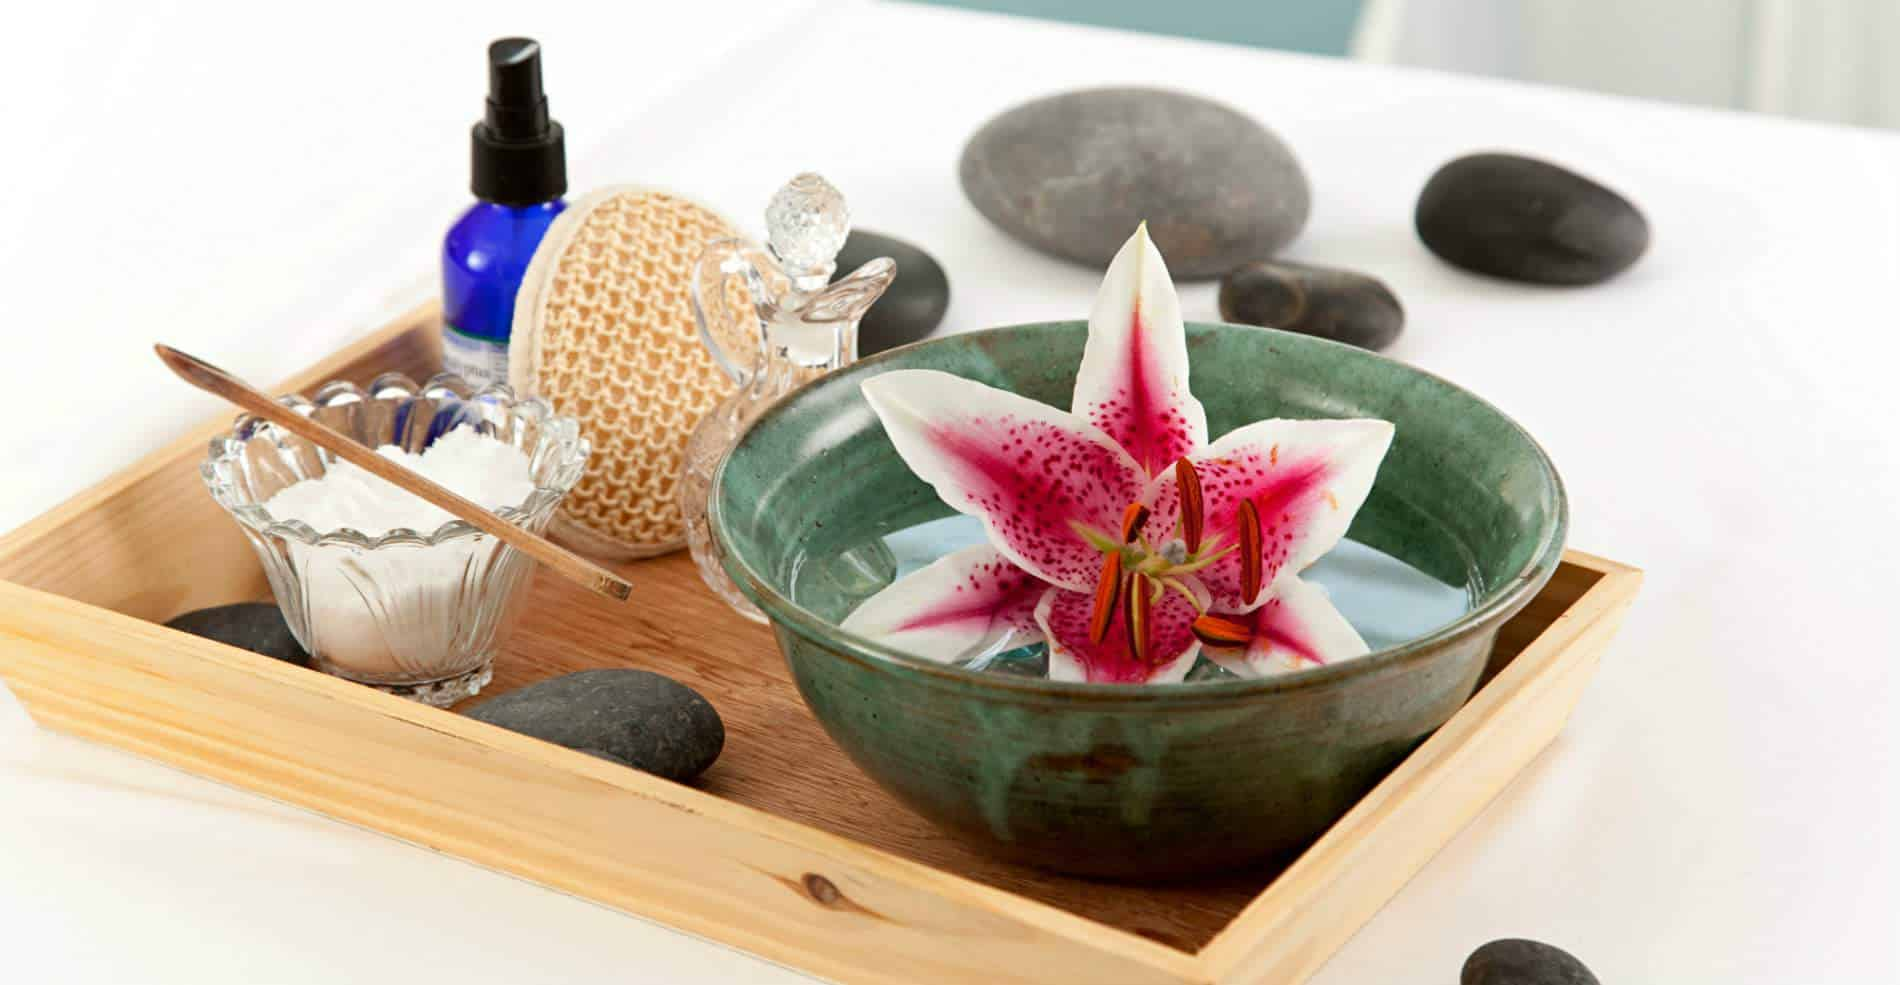 On a small wooden tray is an assortment of spa amenities, and floating in a bowl of water is a big red and white lily